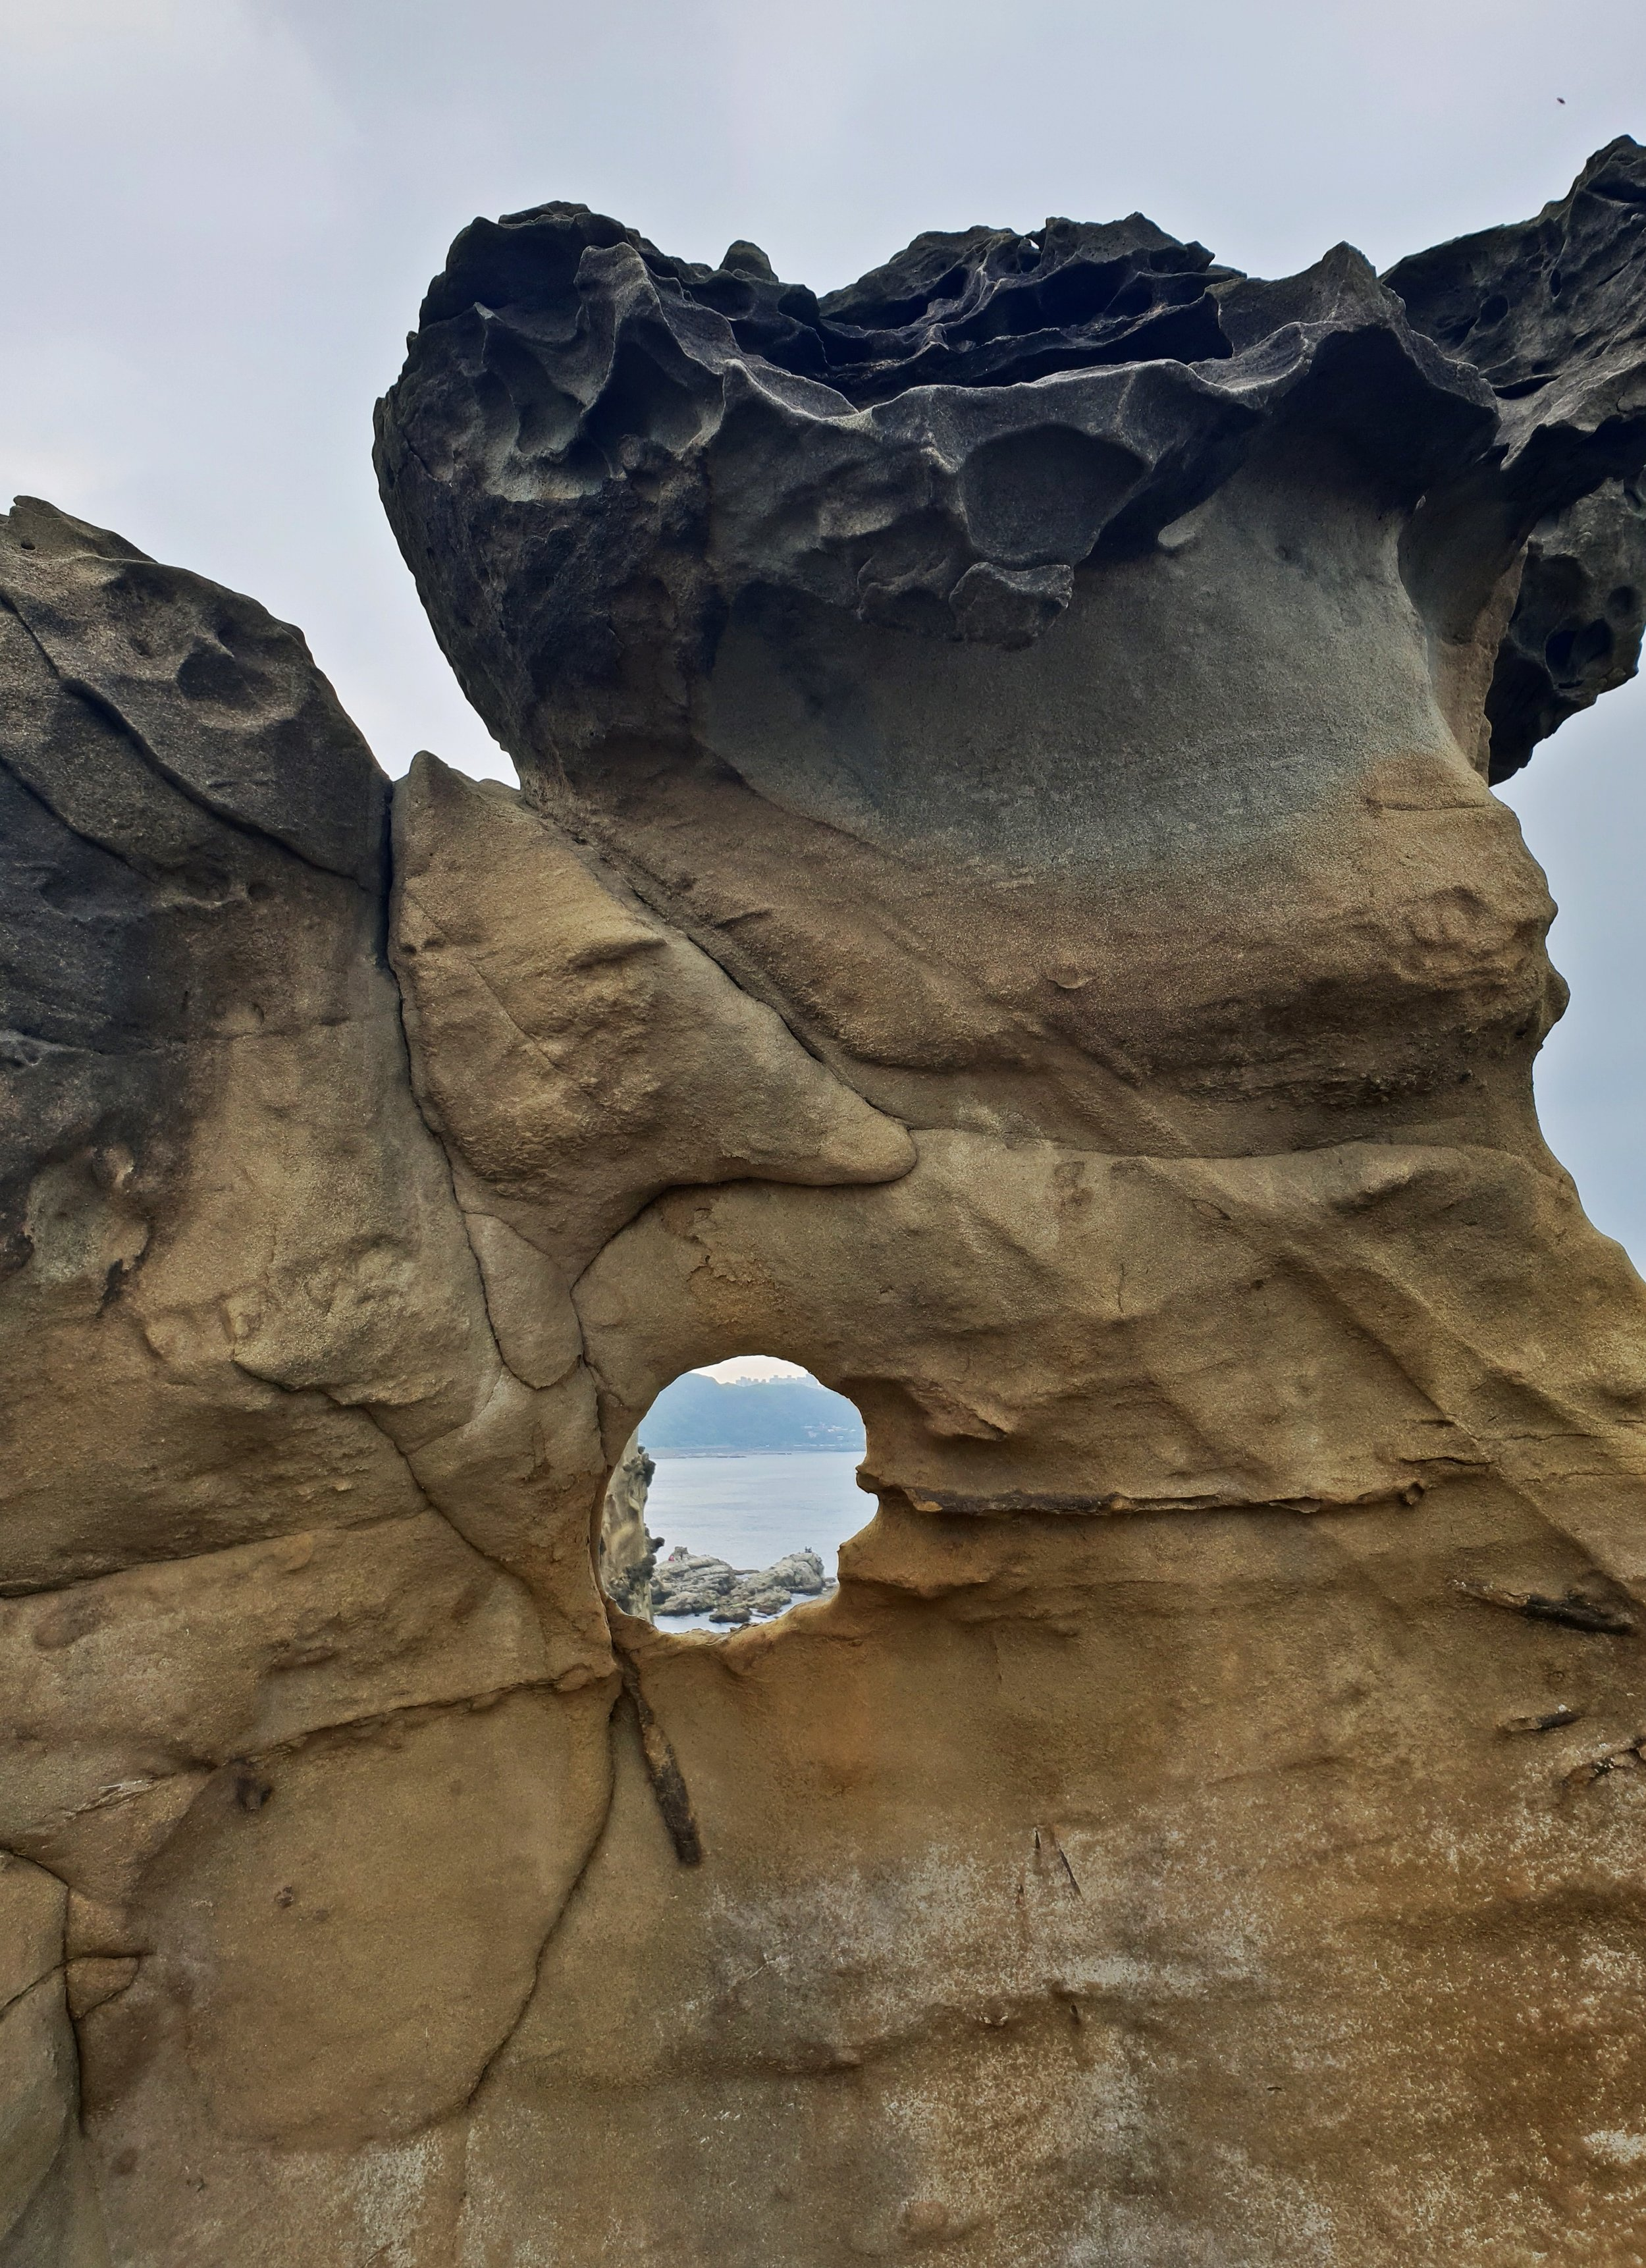 The rock is soft and easily eroded. An unusual rock porthole